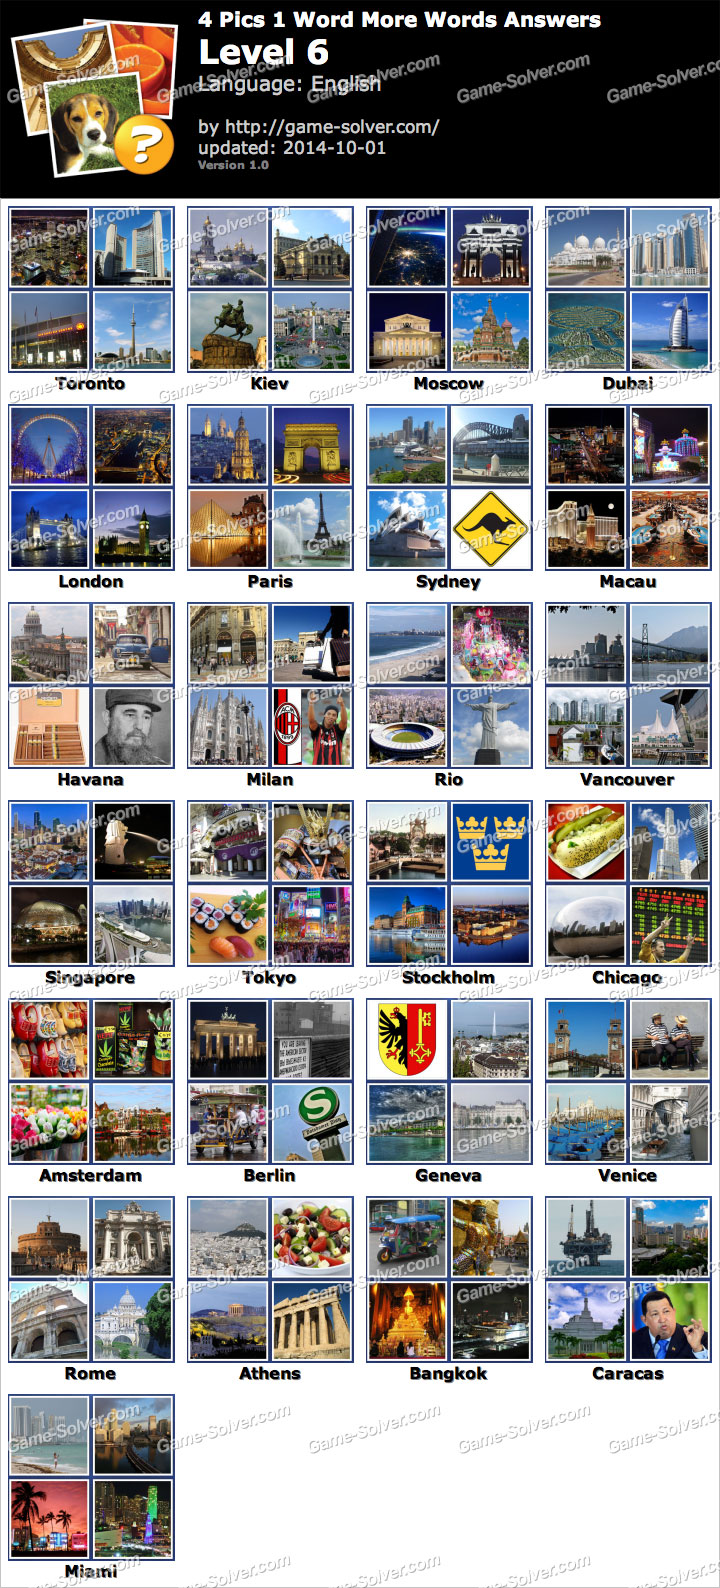 Pics 1 Word More Words Level 6 - Game Solver